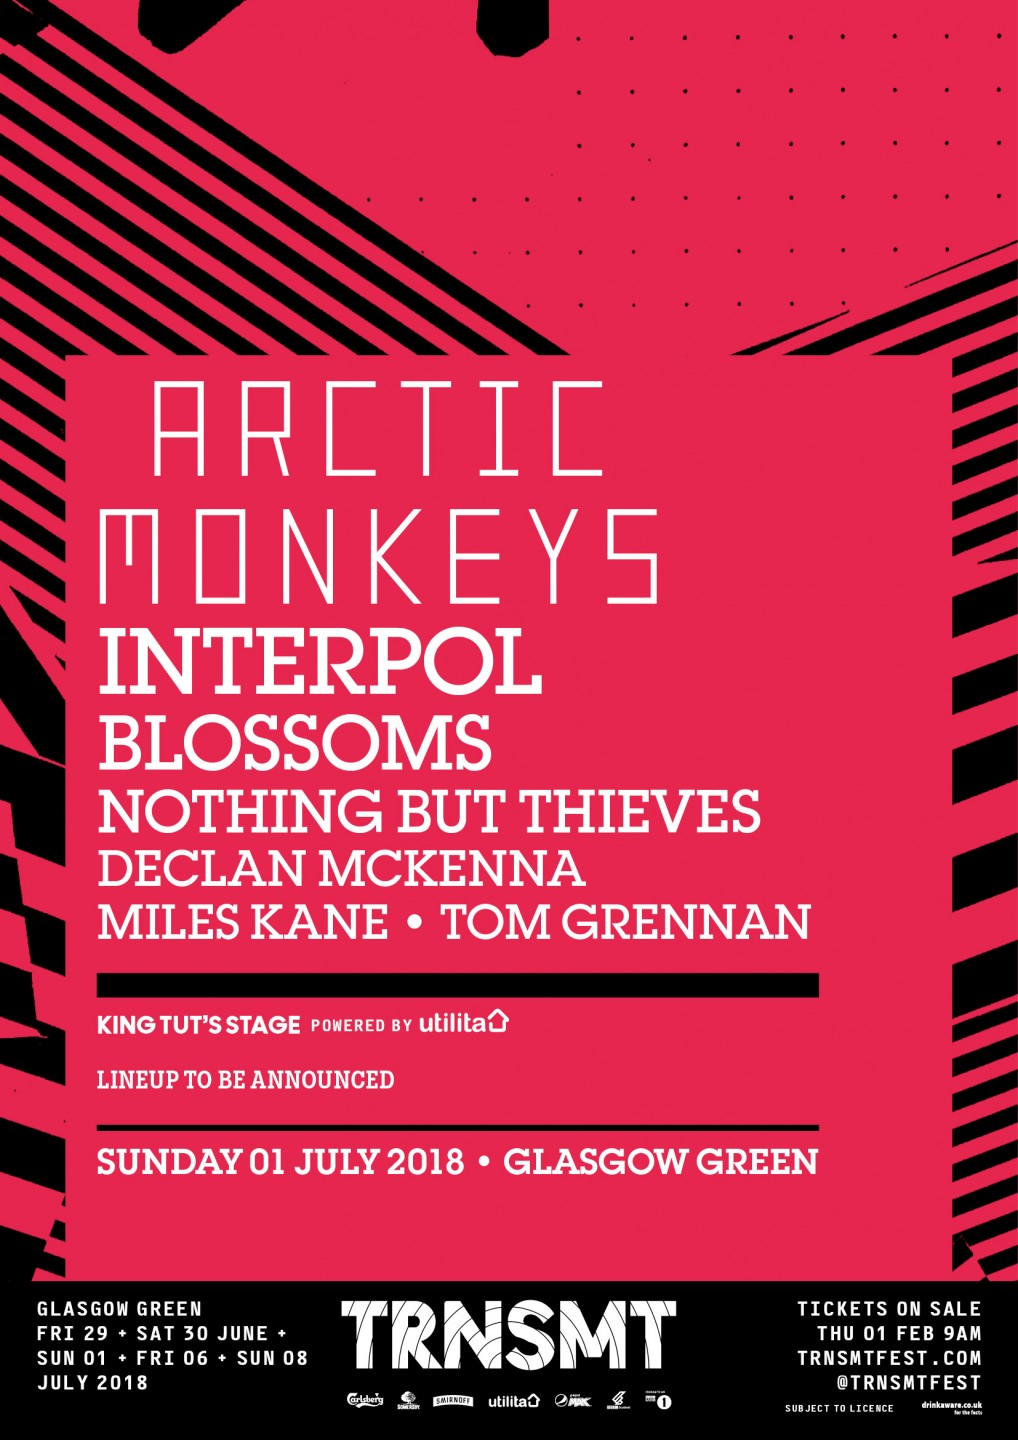 TRNSMT reveal new acts including Arctic Monkeys as headliners